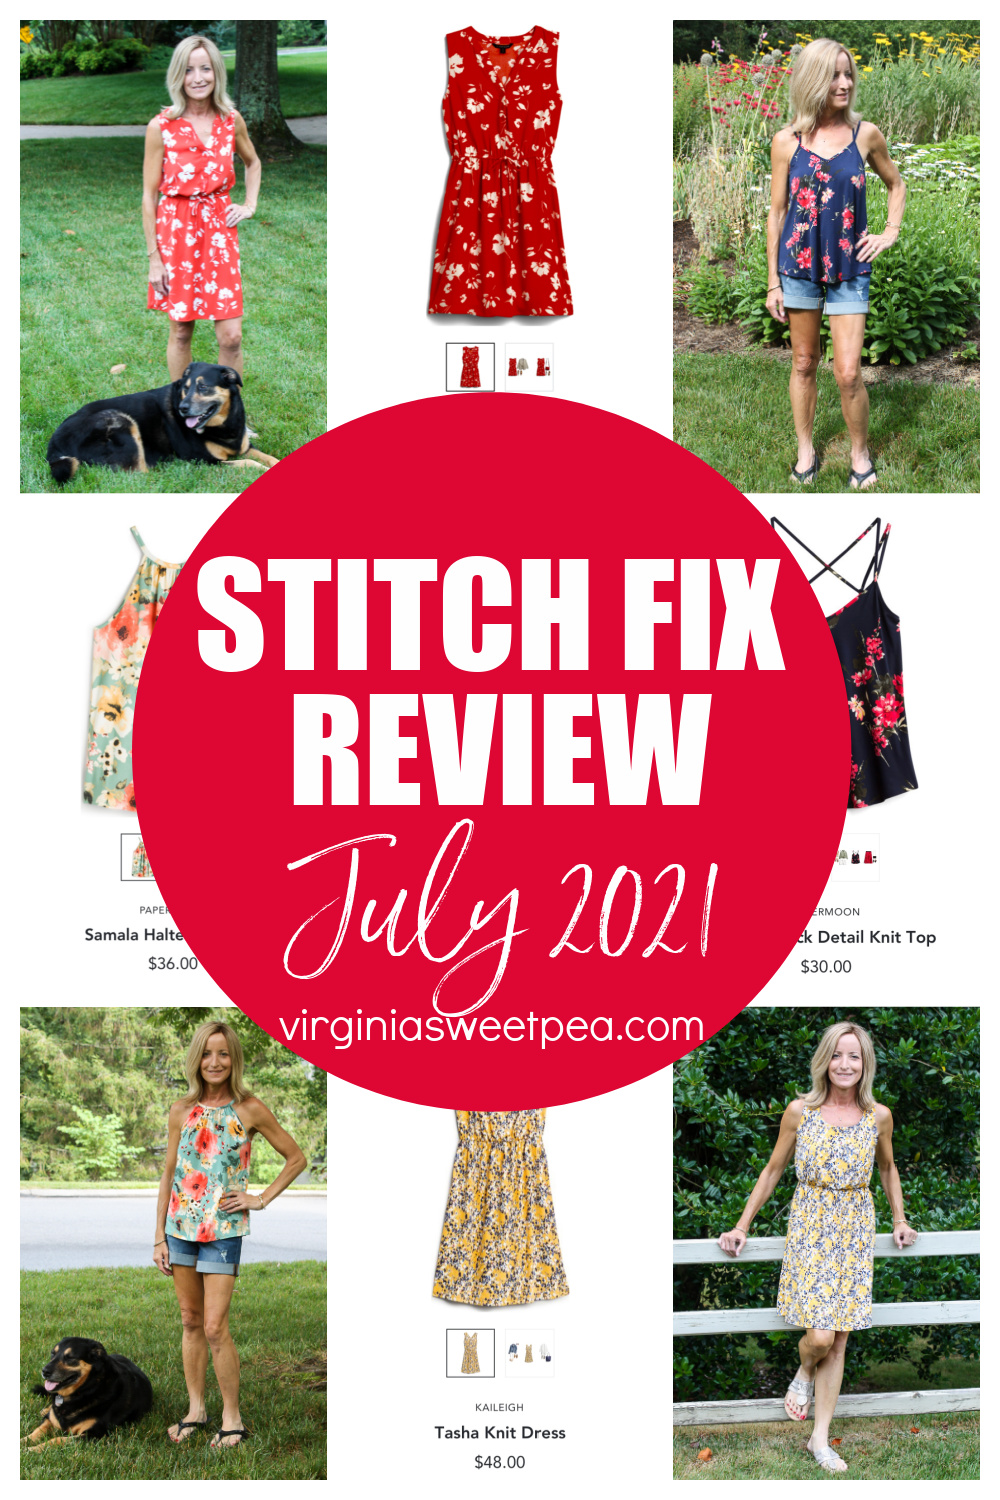 Stitch Fix Review for July 2021